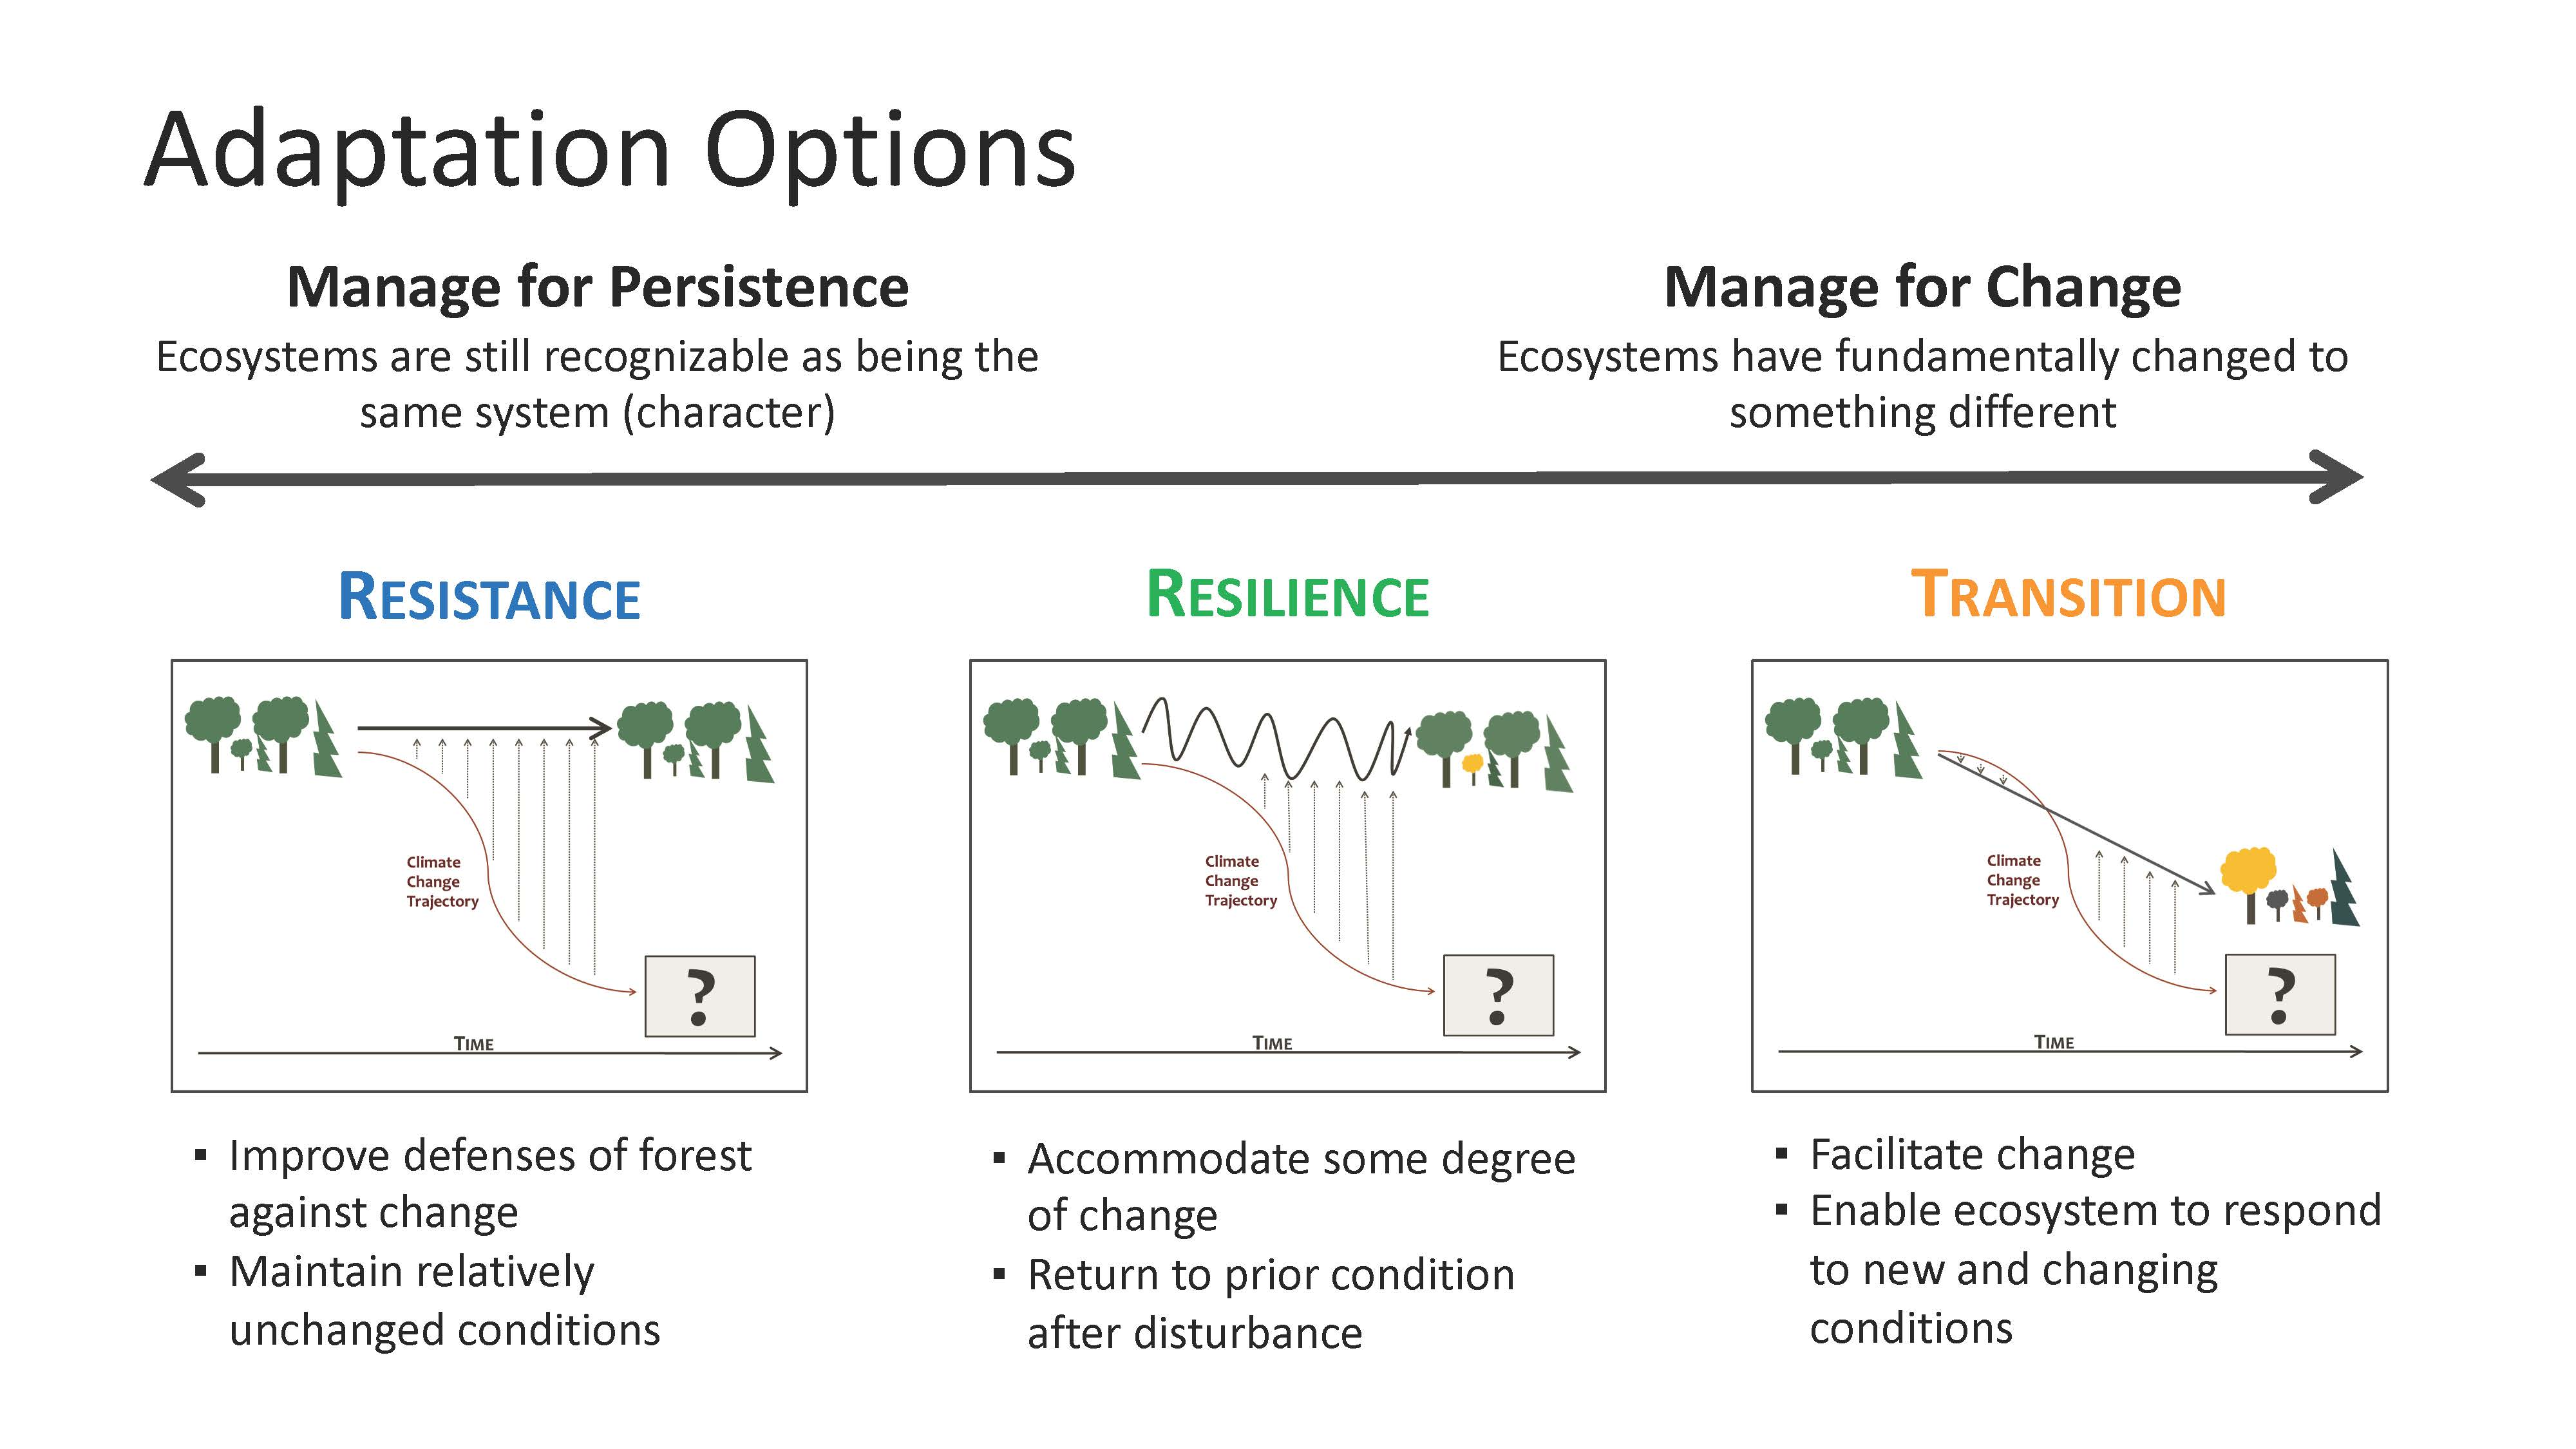 Resistance, resilience, and transition are the adaptation options used in the ASCC trial sites.